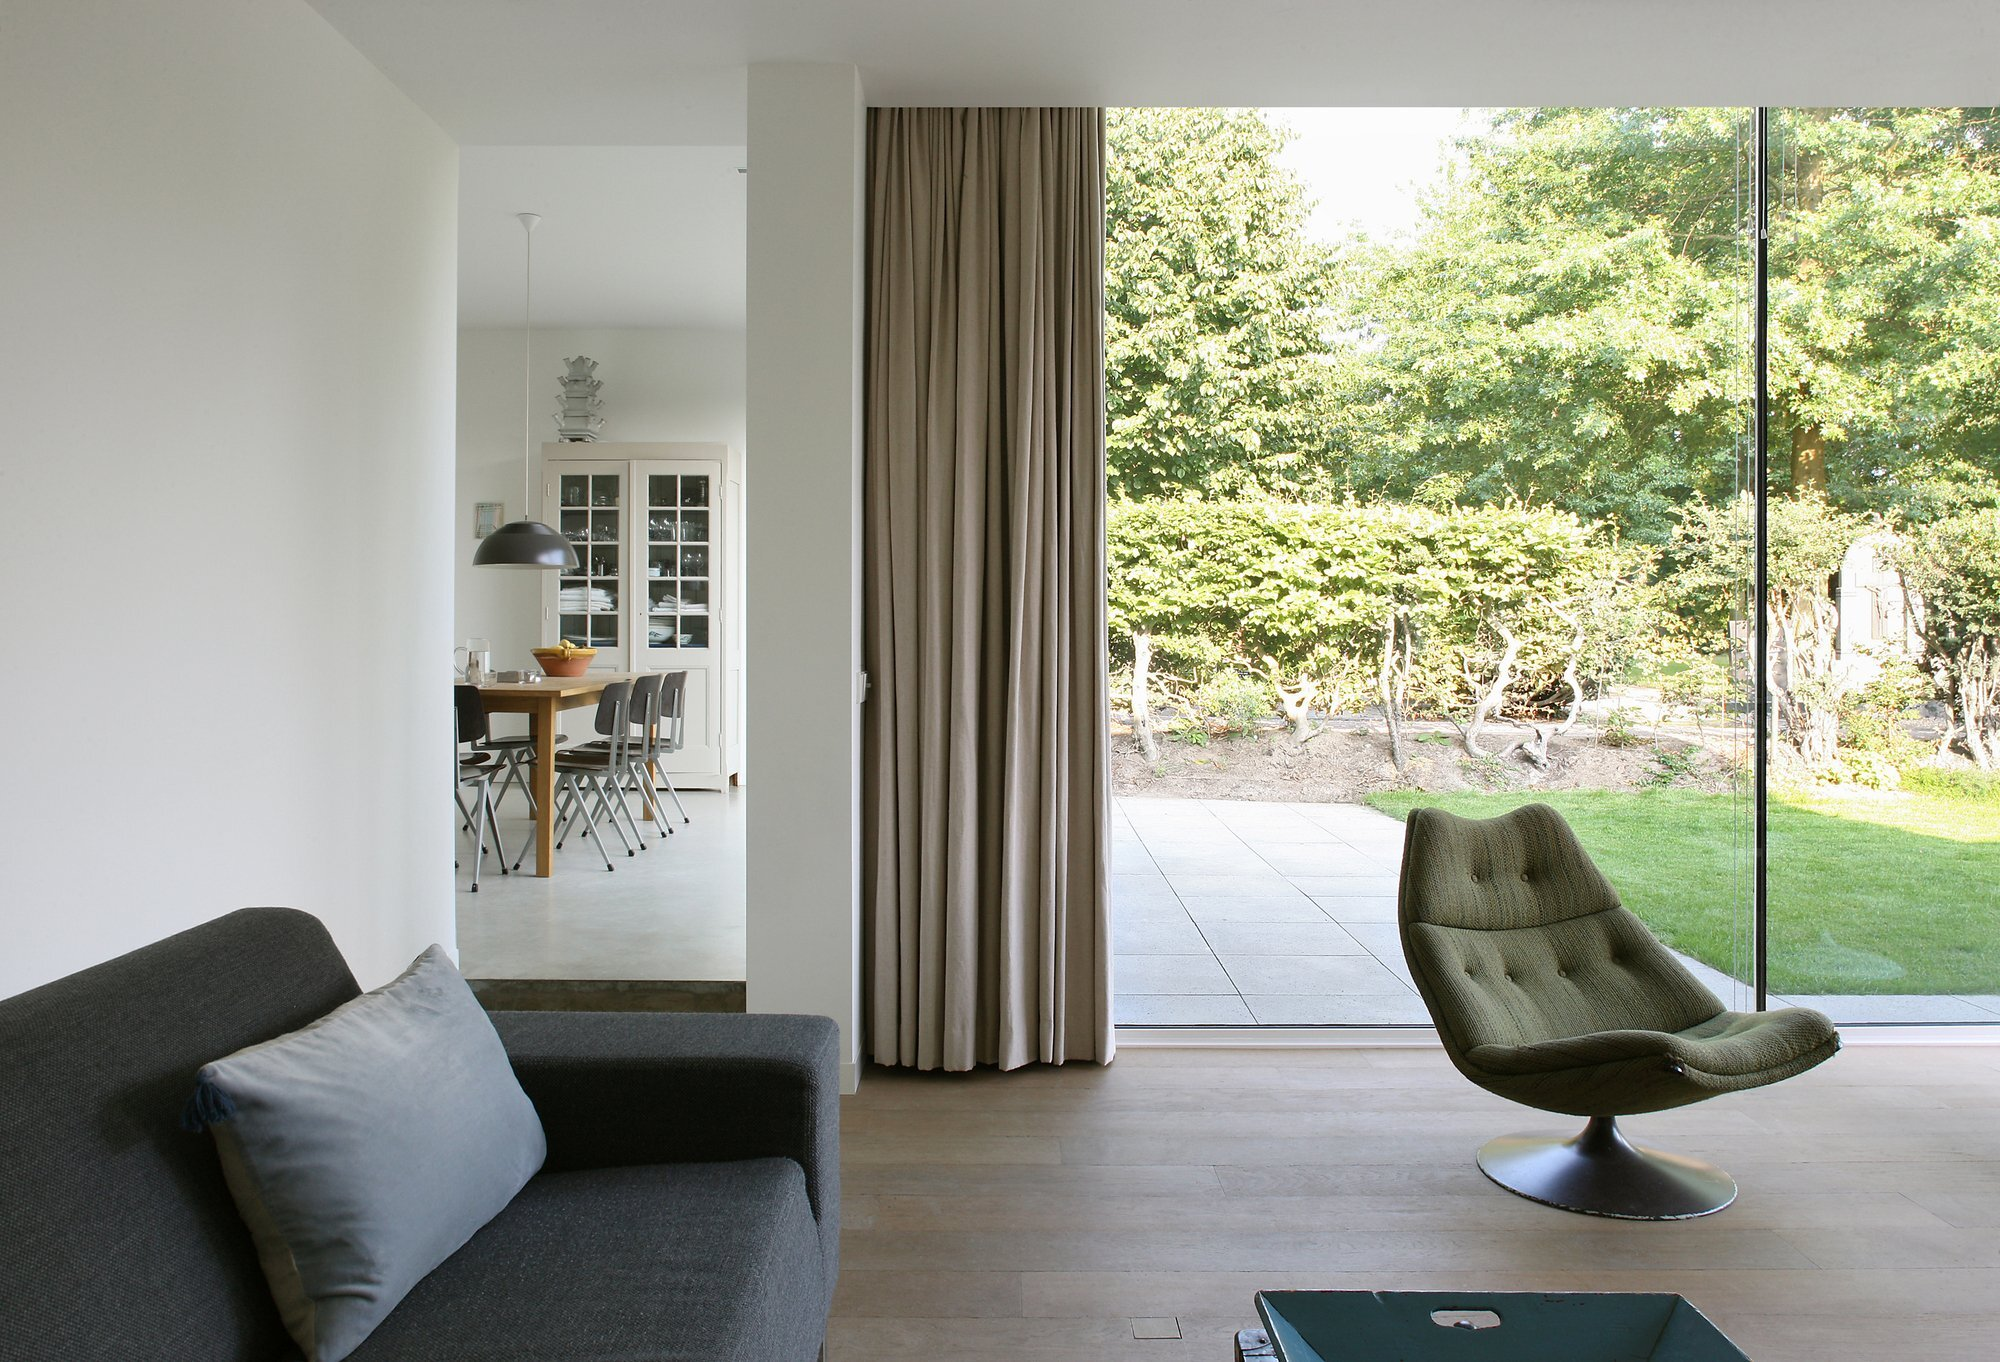 Bedaux-Nagengast Residence - Small House - Bedaux de Brouwer Architects - Living Room - Humble Homes